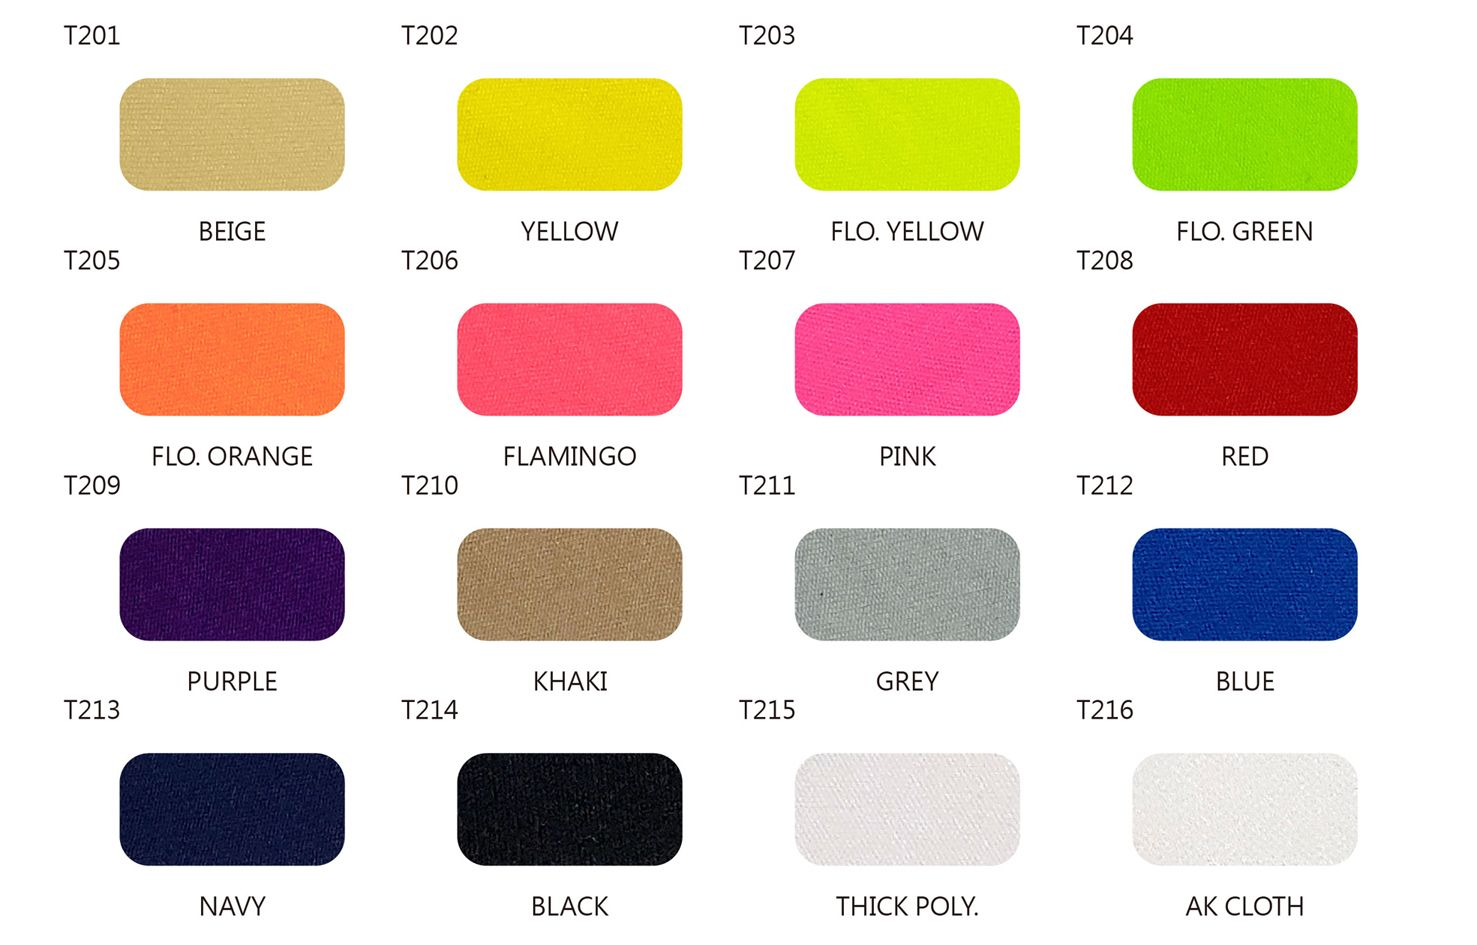 Many textile and color choices for Neoprene lamination.